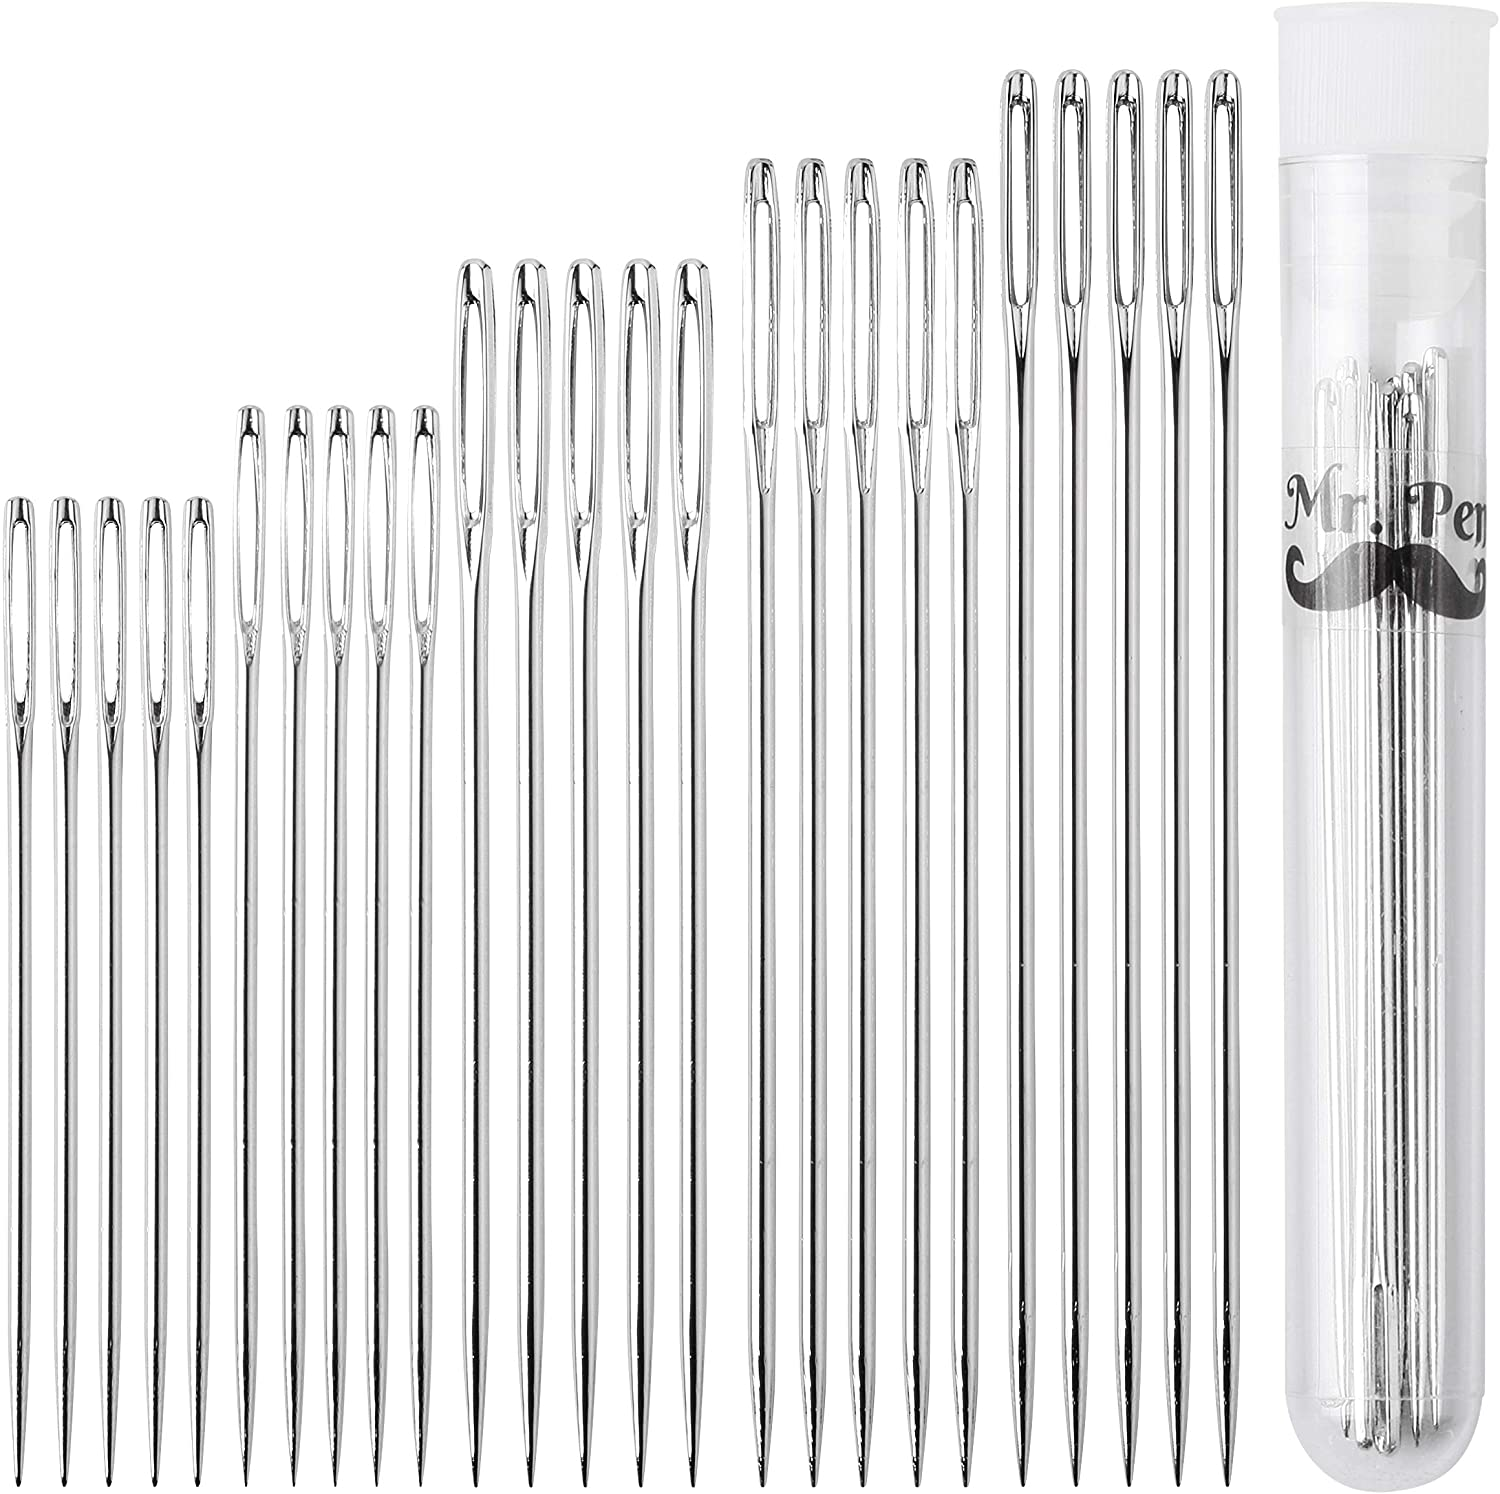 A set of hand sewing needles is good to have on hand. I like a set that includes many different sizes.